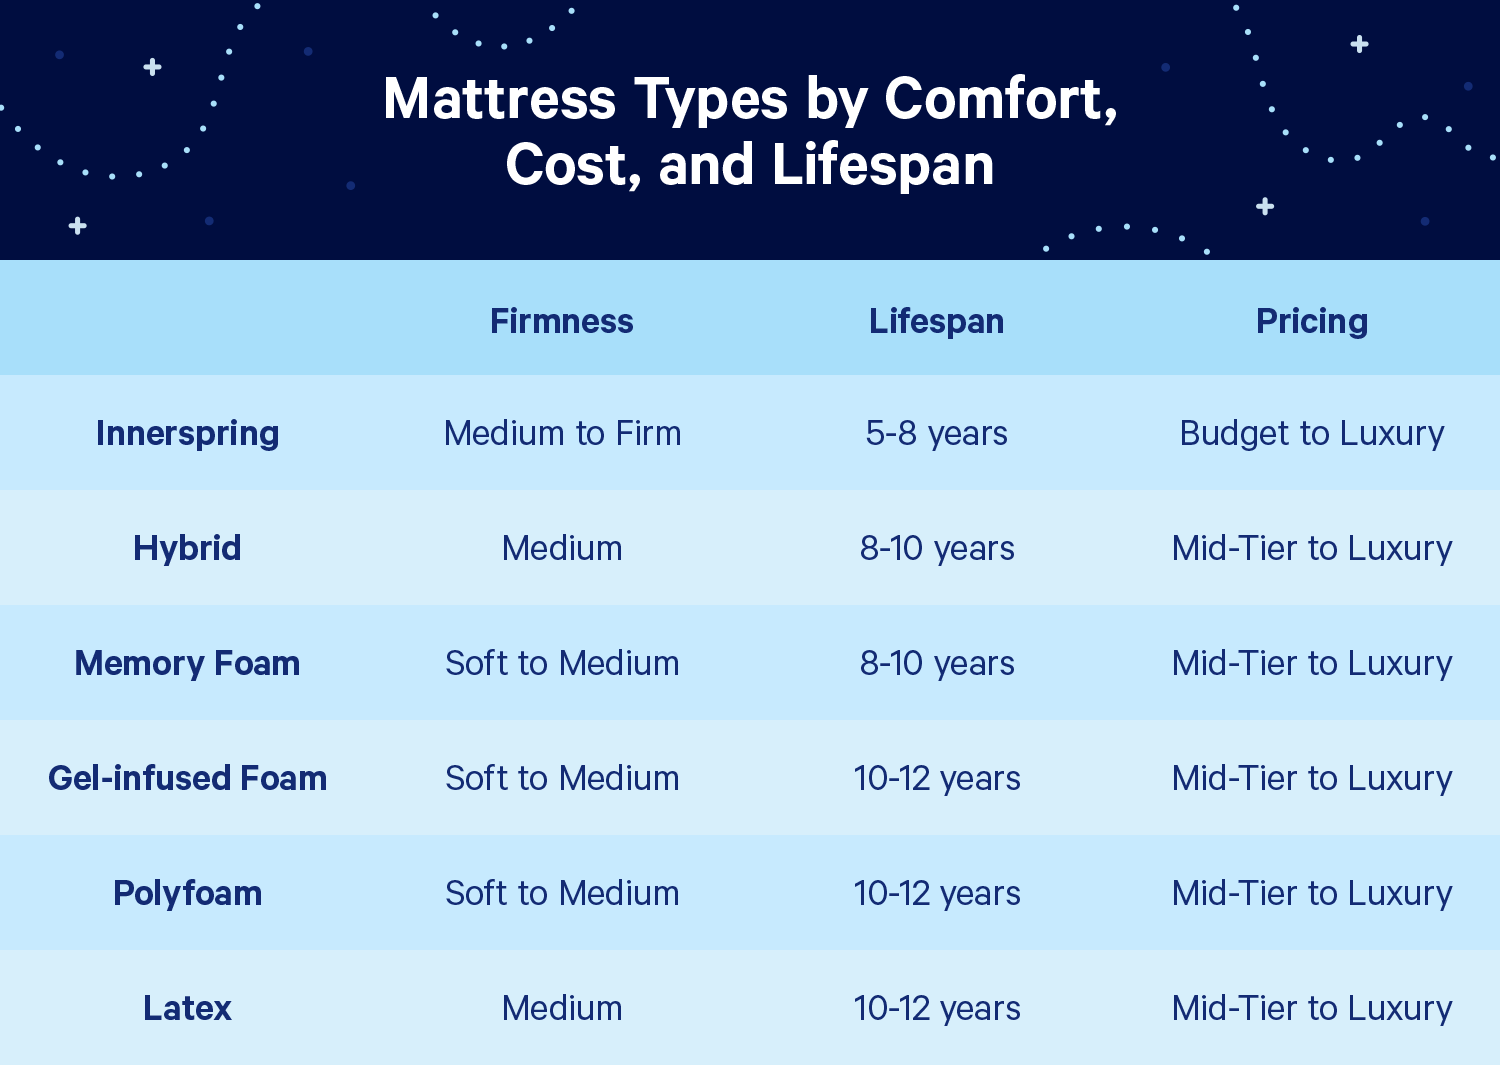 mattress-types-by-comfort-cost-lifespan